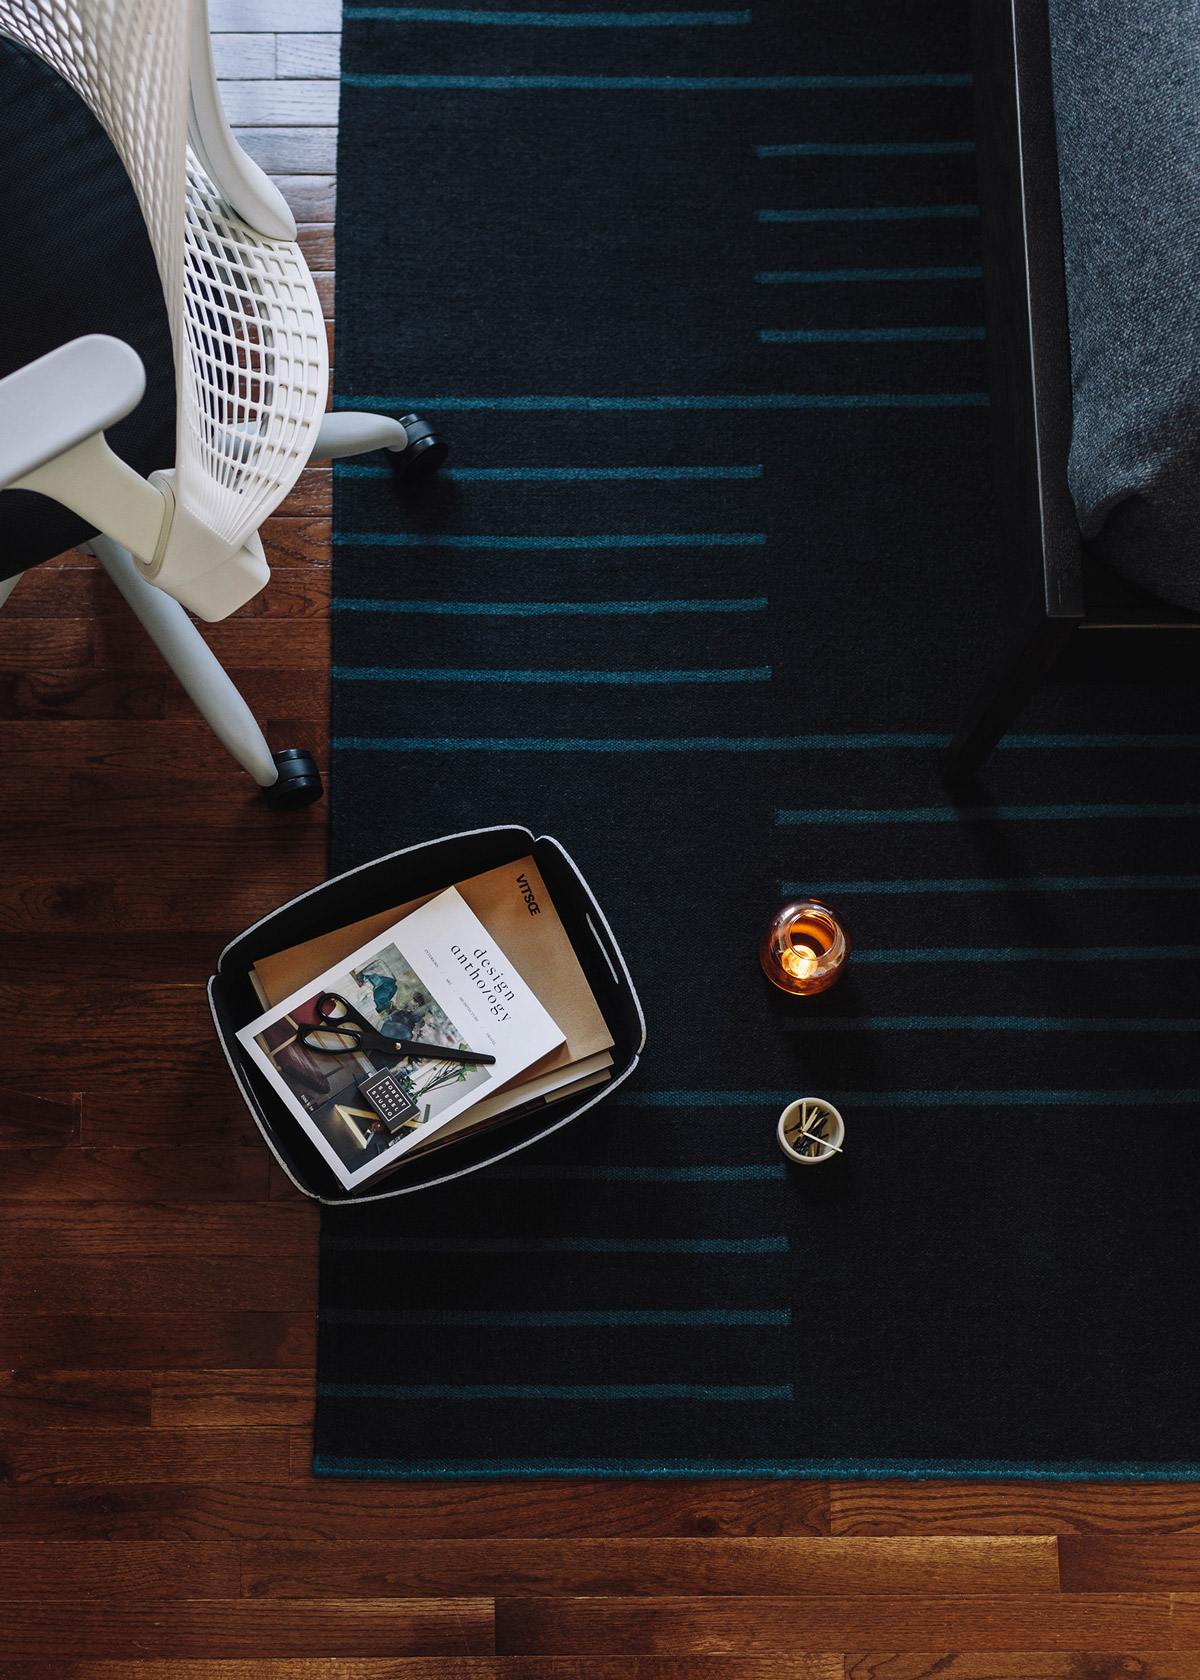 Flatweave rug Classic in color Teal and Black shown from above.